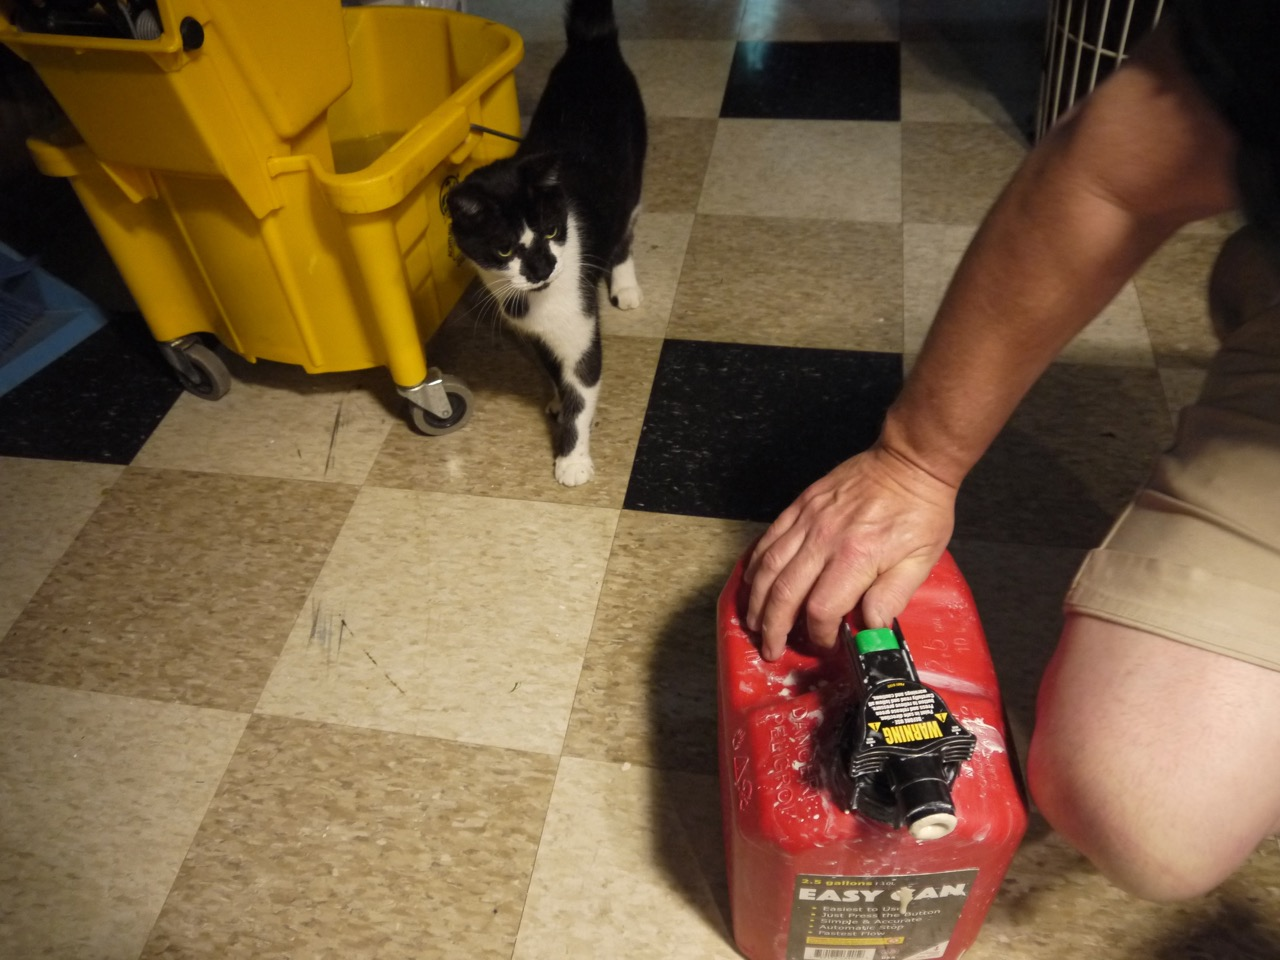 Pablo The Cat checking out my improvised slipcast container. This gasoline container has worked out very well.